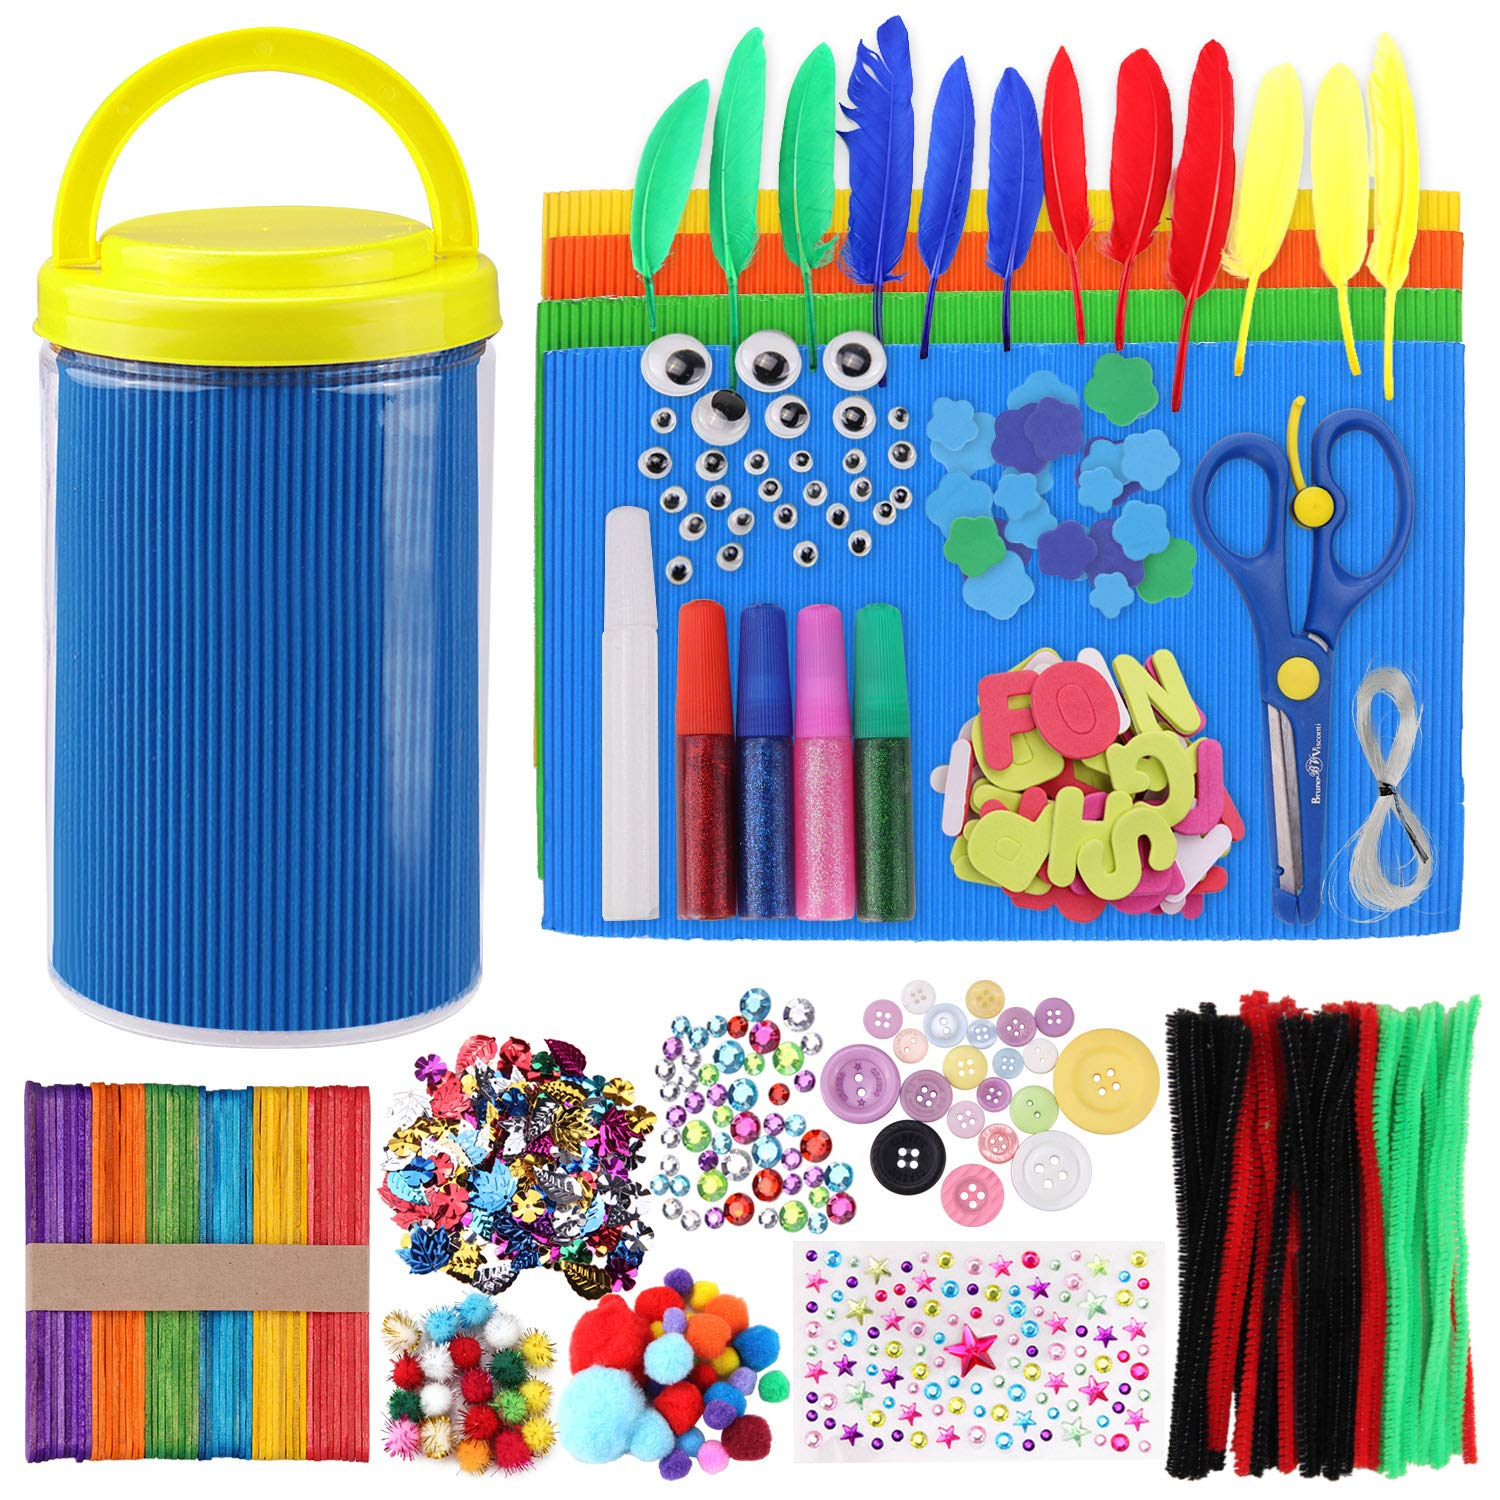 Satkago Kids DIY Art Craft Materials Supplies Kit Includes Pompoms Pipe Cleaners Wiggle Googly Eyes Feathers Popsicle Sticks Scissors